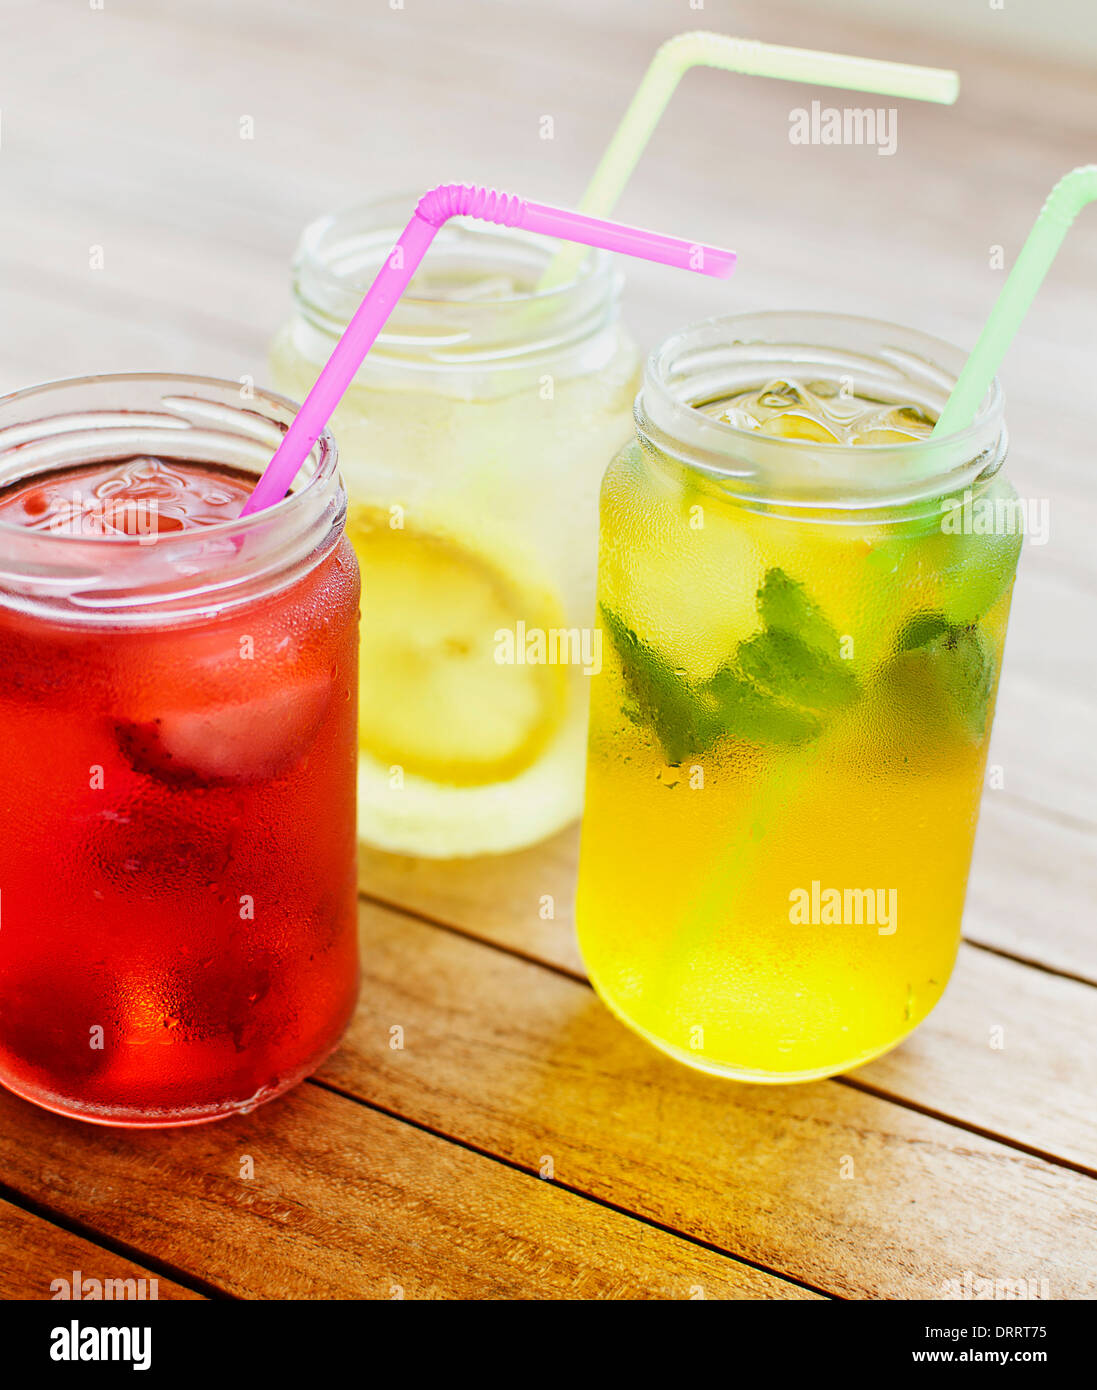 Fruit beverages - Stock Image